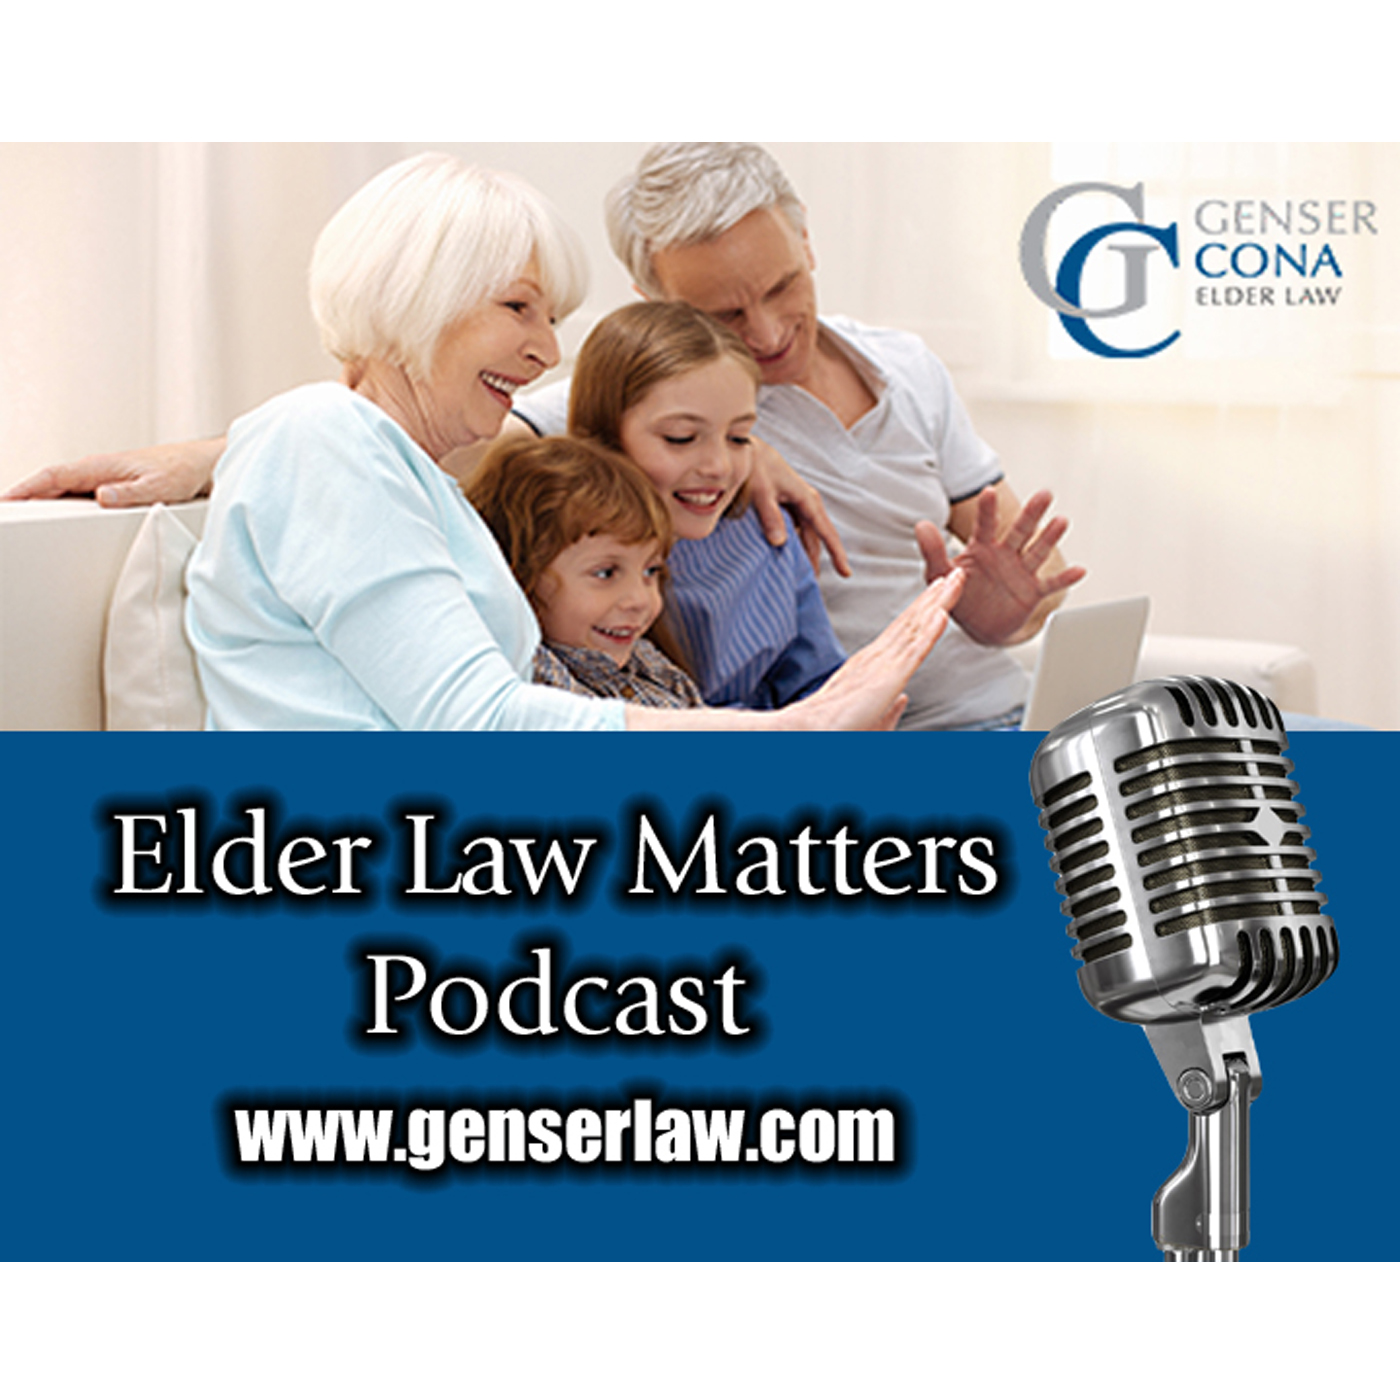 Elder Law Matters Podcast show art